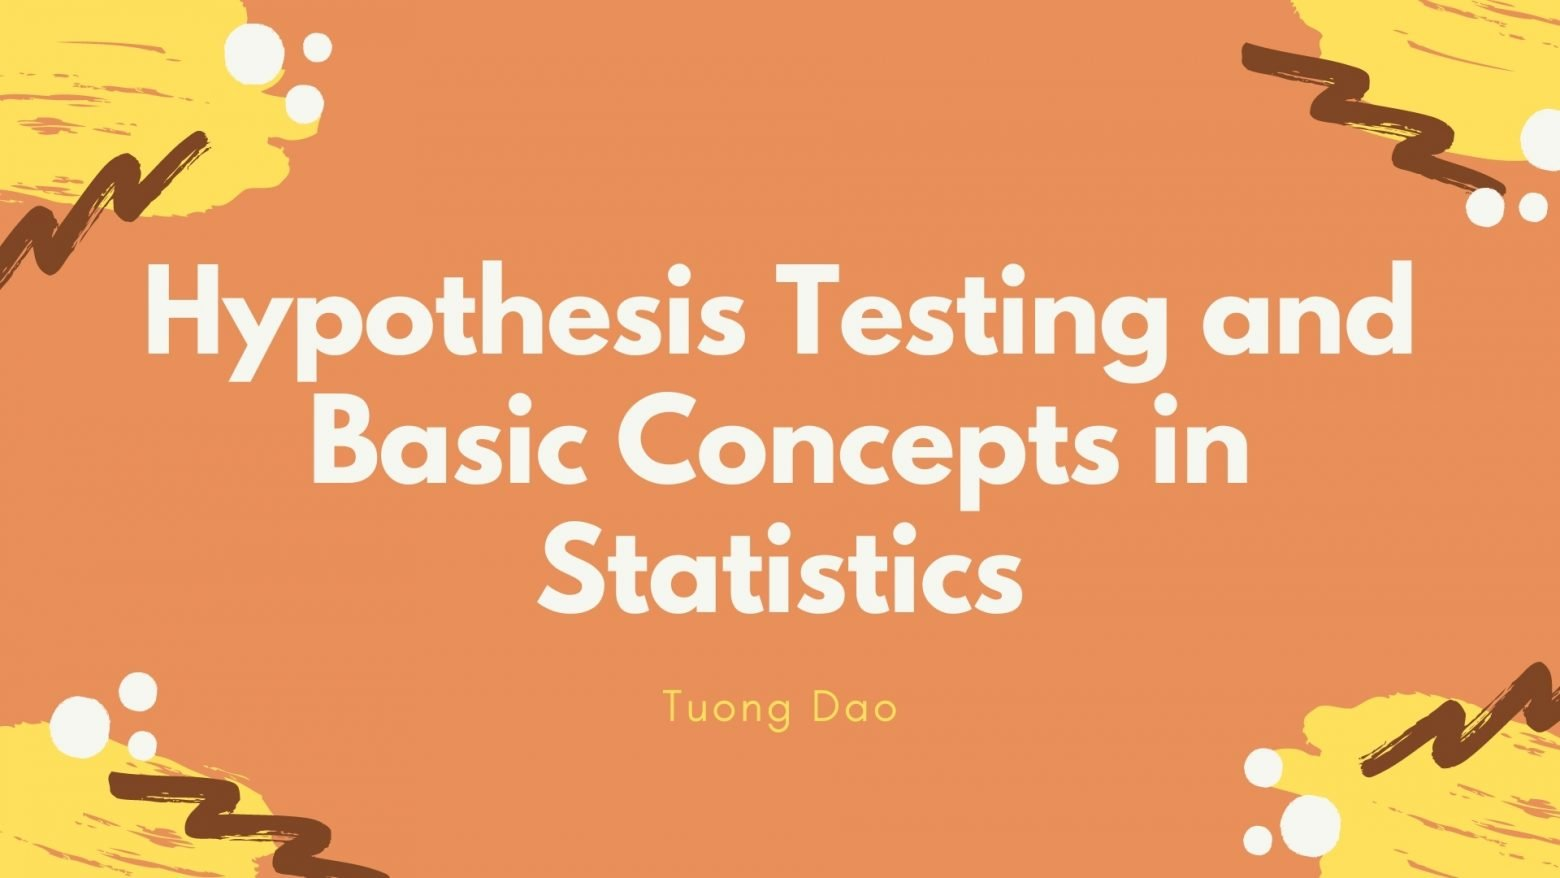 Hypothesis Testing and Basic Concepts in Statistics